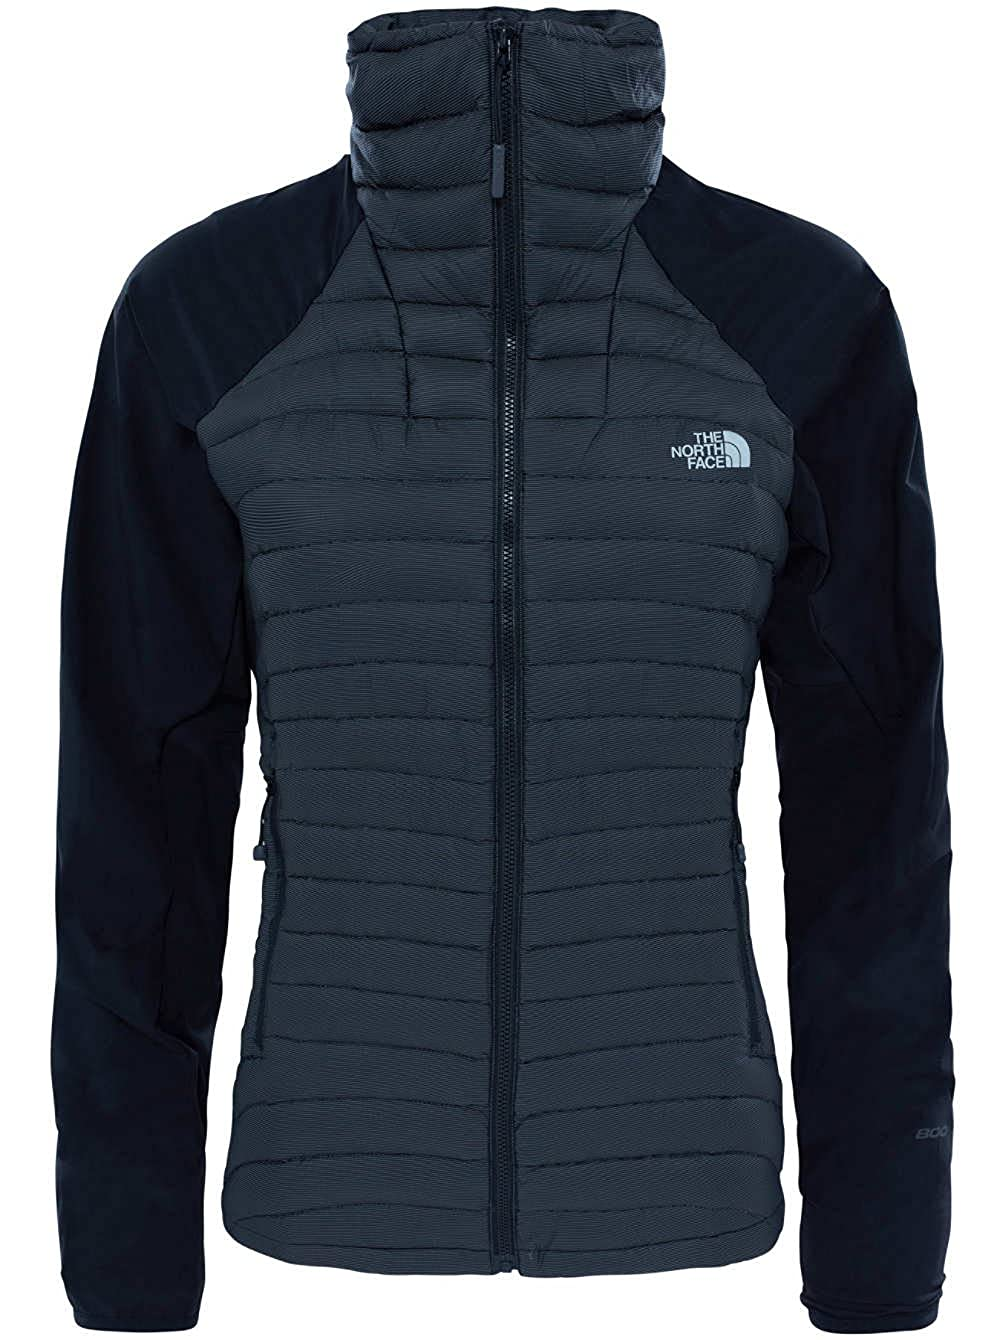 The North Face W Verto Micro Chaqueta, Mujer